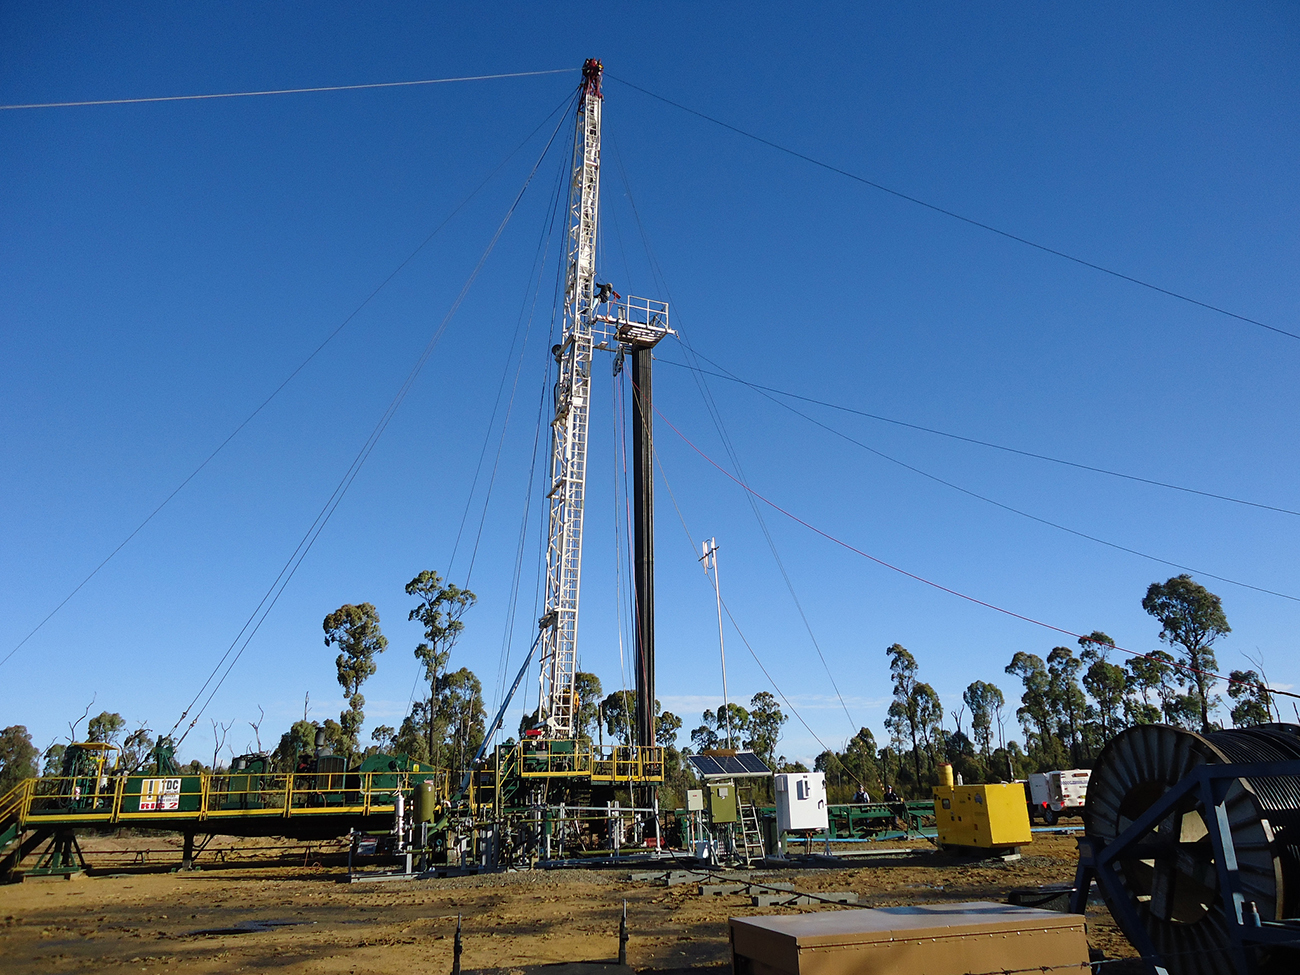 Fracking well. Photo by: Kate Ausburn / Flickr